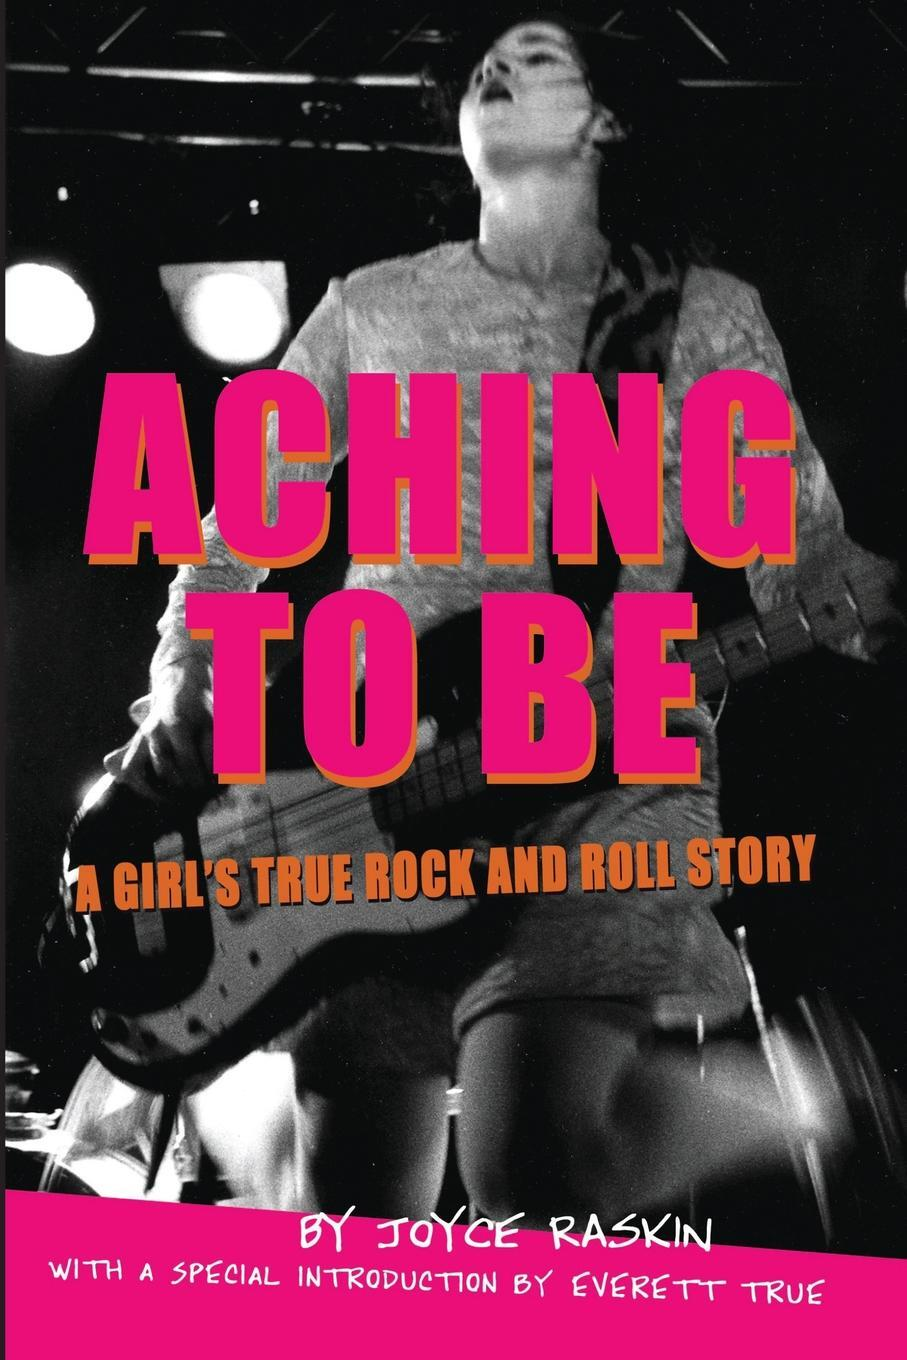 Aching To Be. A Girl's True Rock and Roll Story